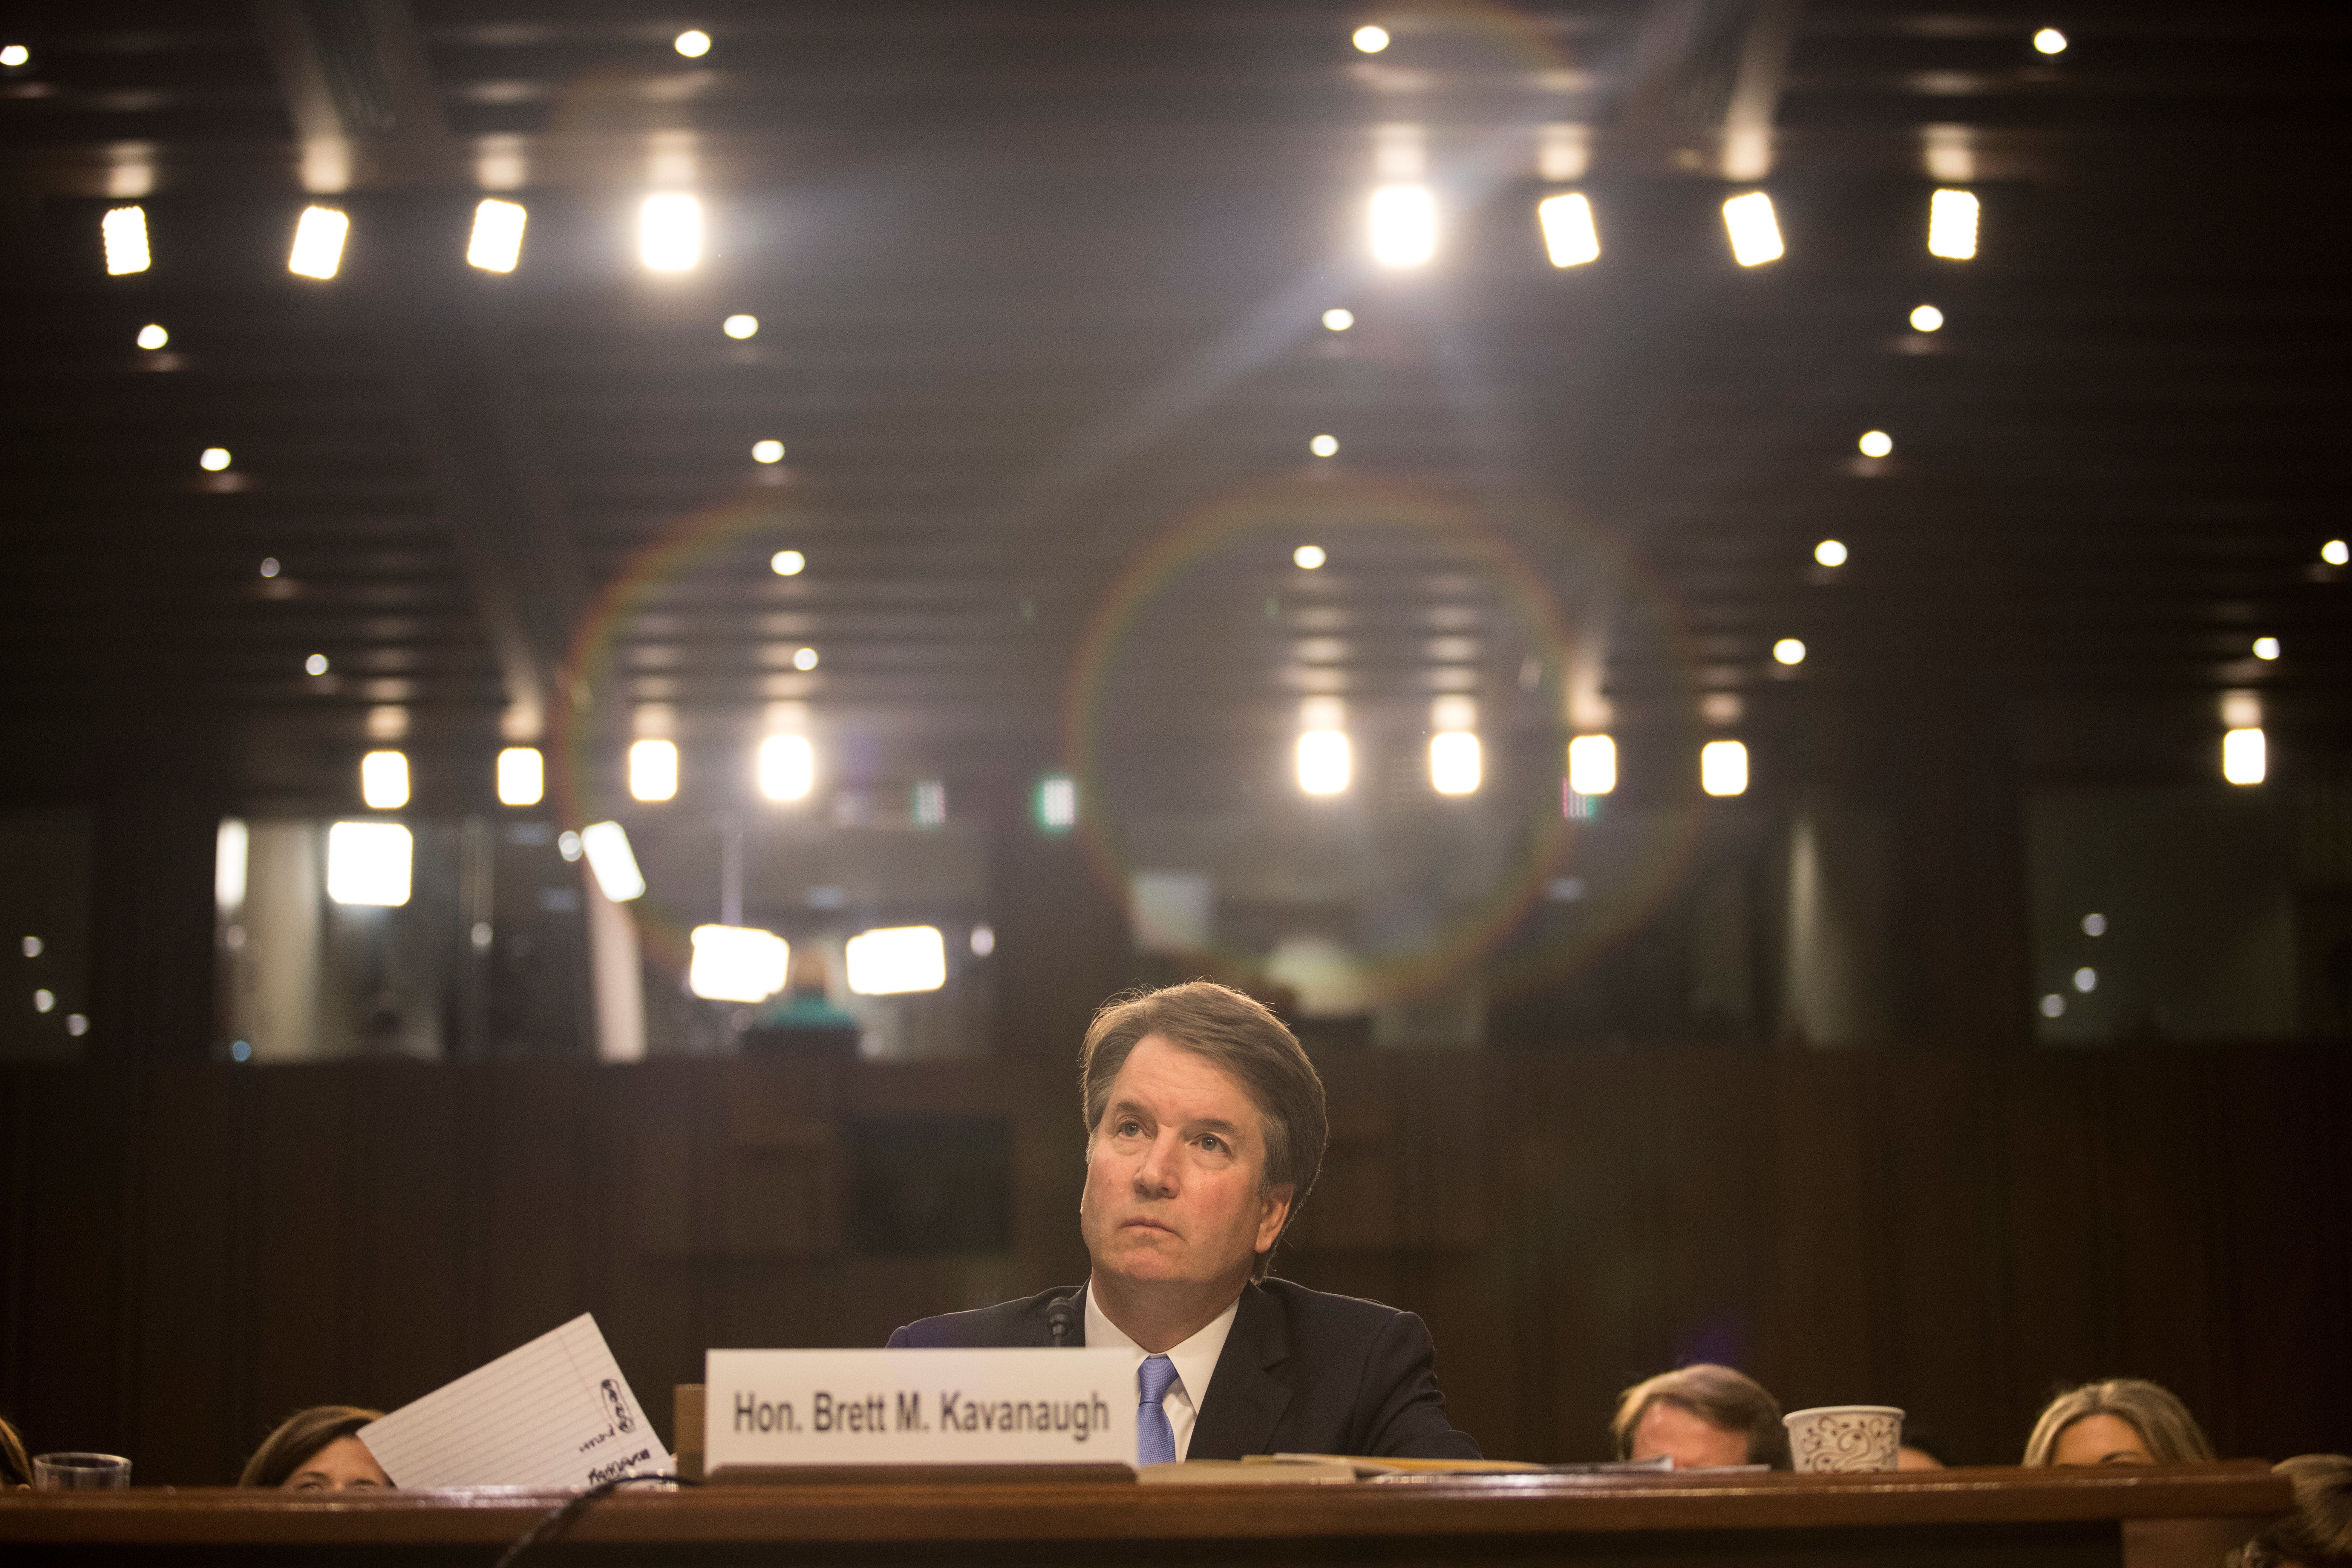 Supreme Court nominee Brett Kavanaugh testifies during the third day of his confirmation hearing before the Senate Judiciary Committee on Capitol Hill in Washington, U.S., September 6, 2018. REUTERS/Alex Wroblewski